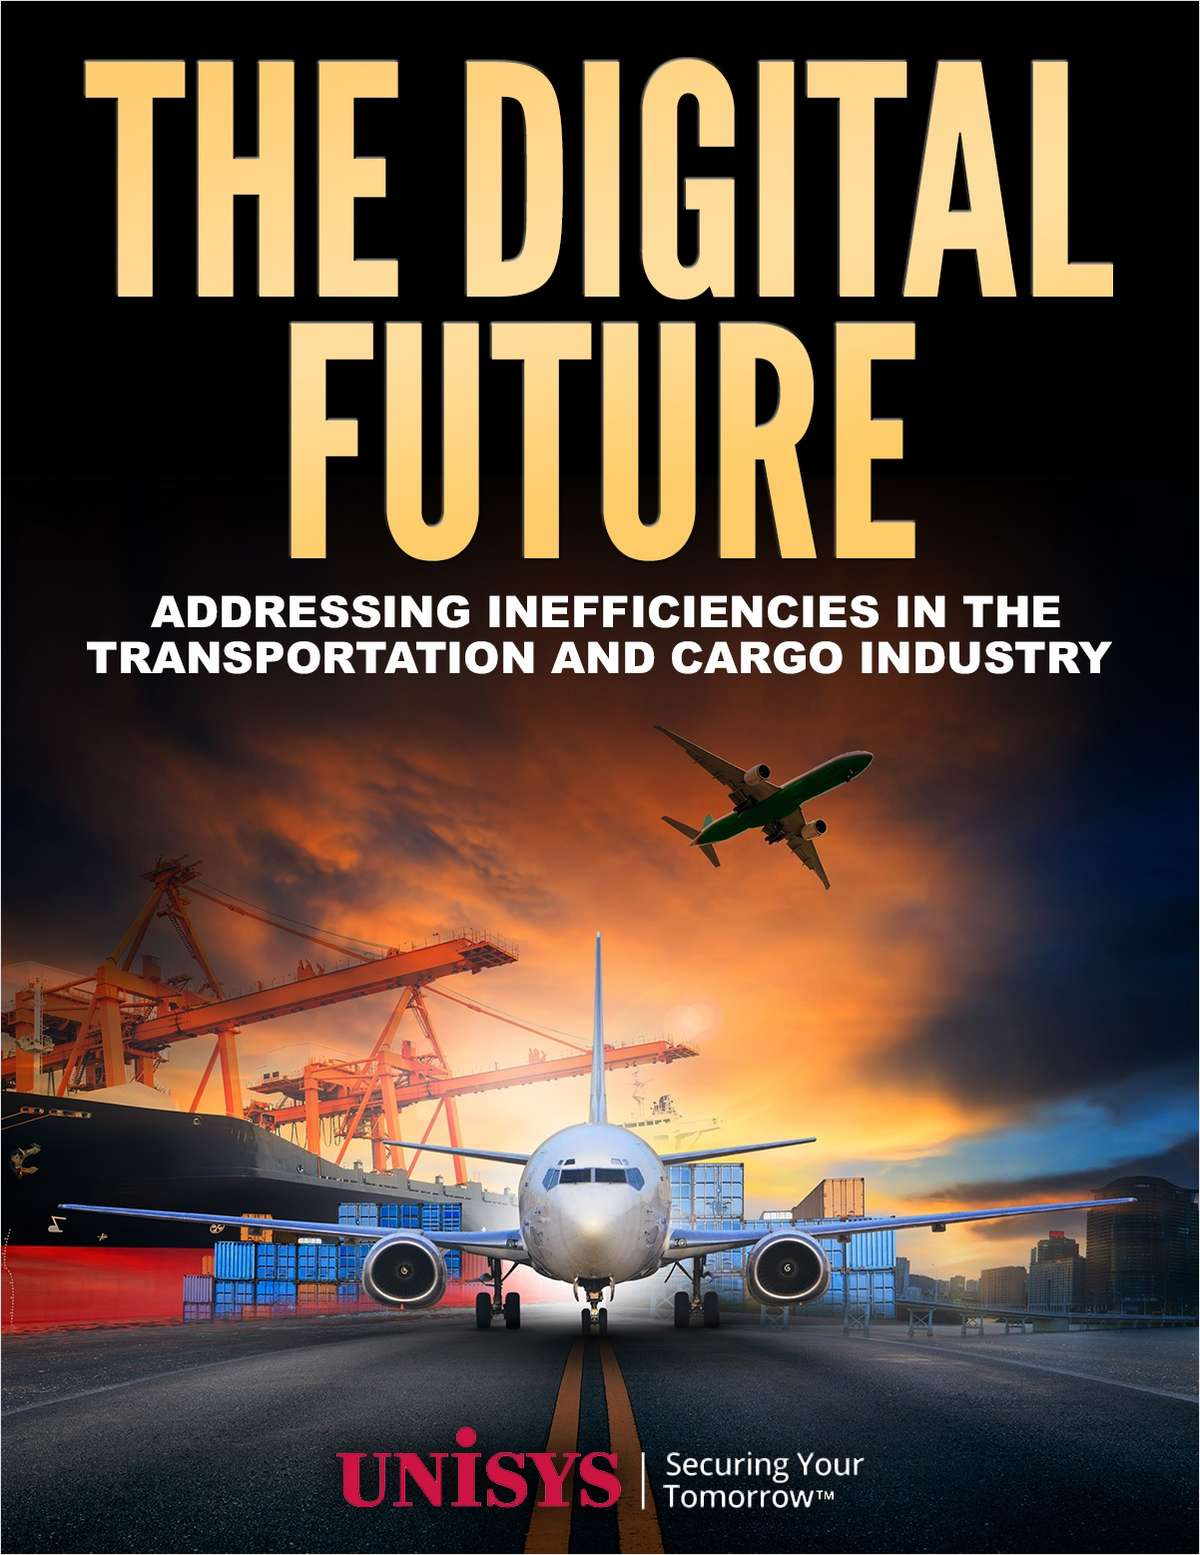 The Digital Future: Addressing Inefficiencies in the Transportation and Cargo Industry